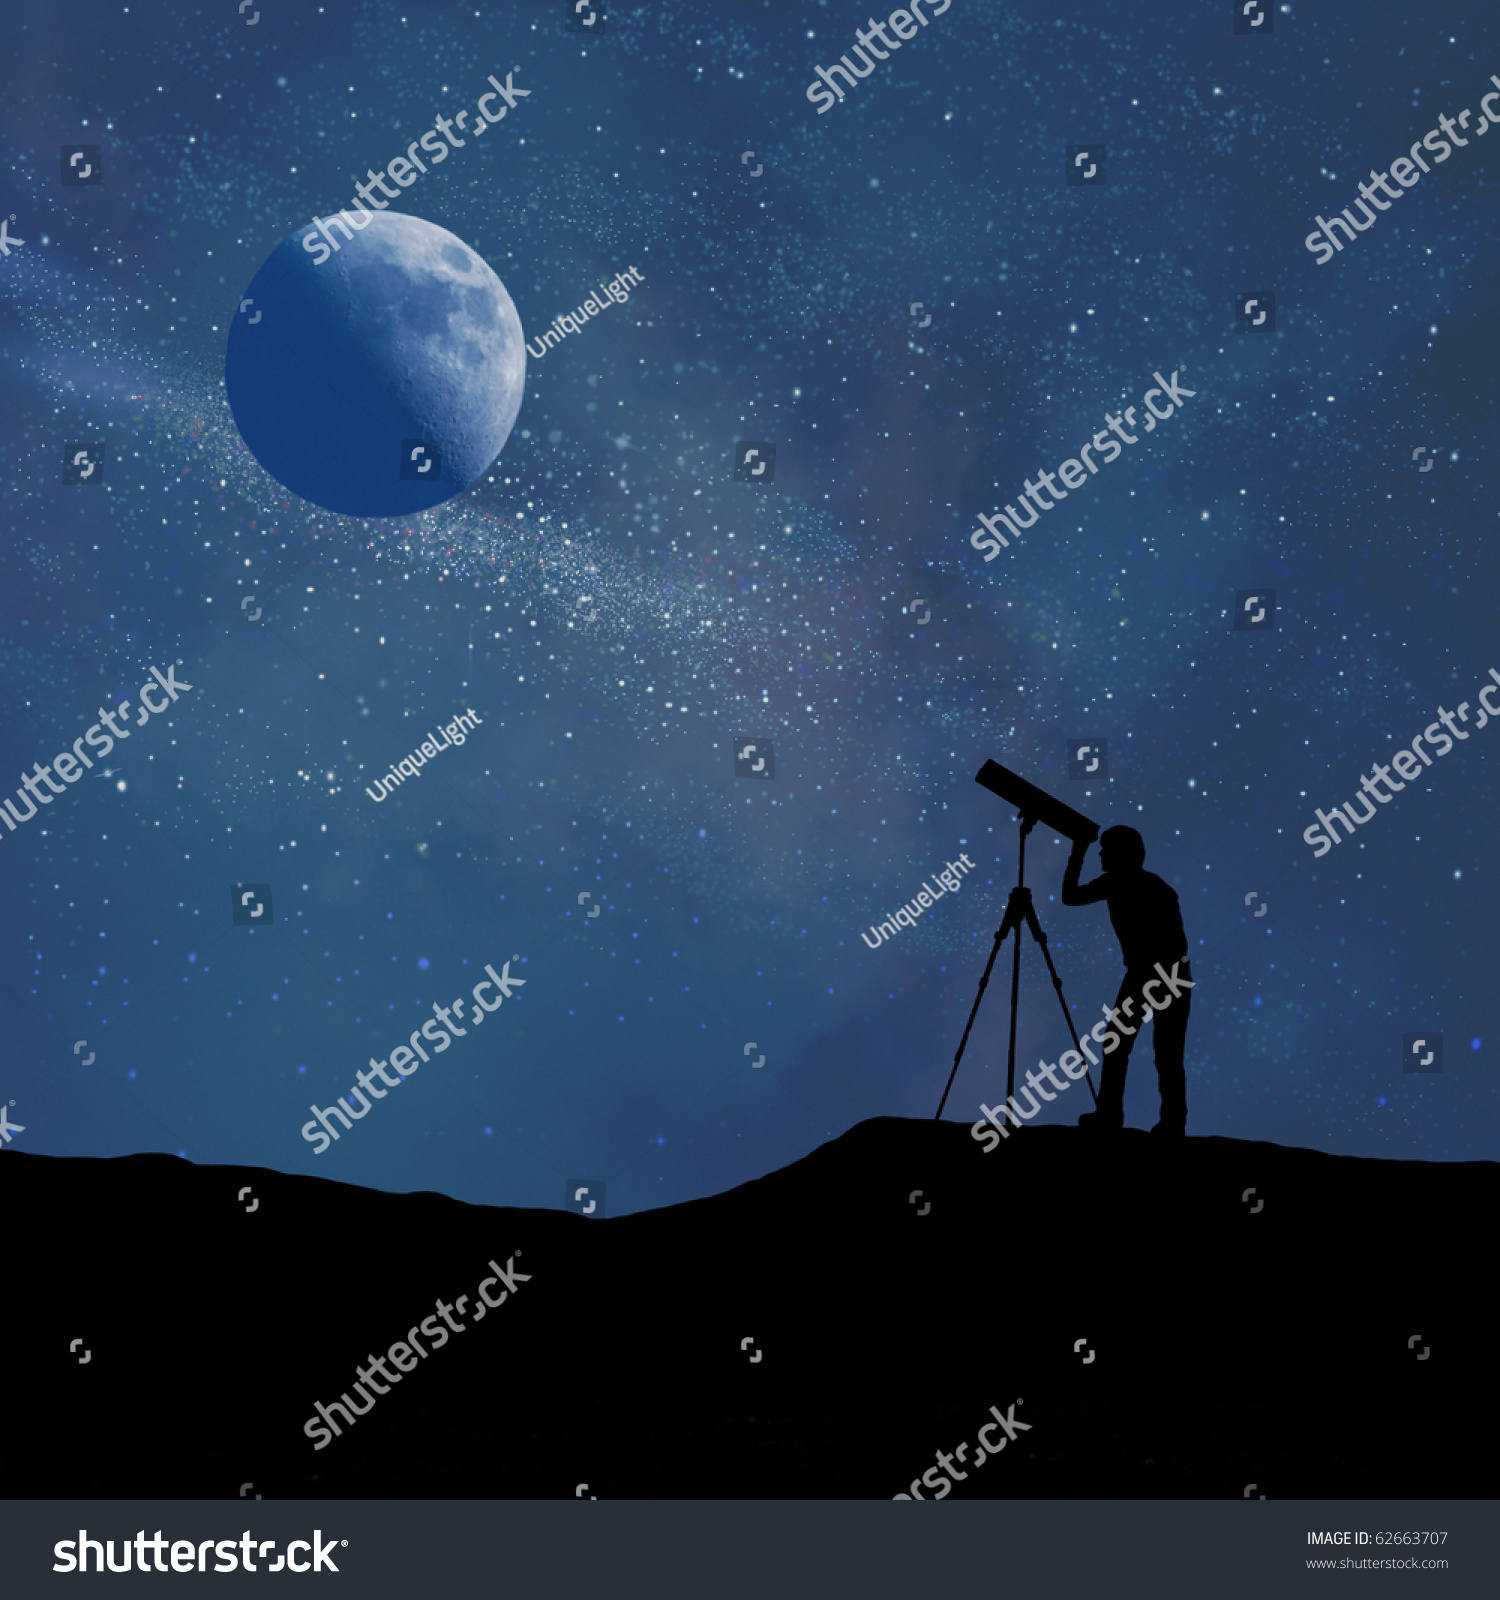 Silhouette of person looking at a stylized digitally created night sky through a stylized digitally created telescope #62663707